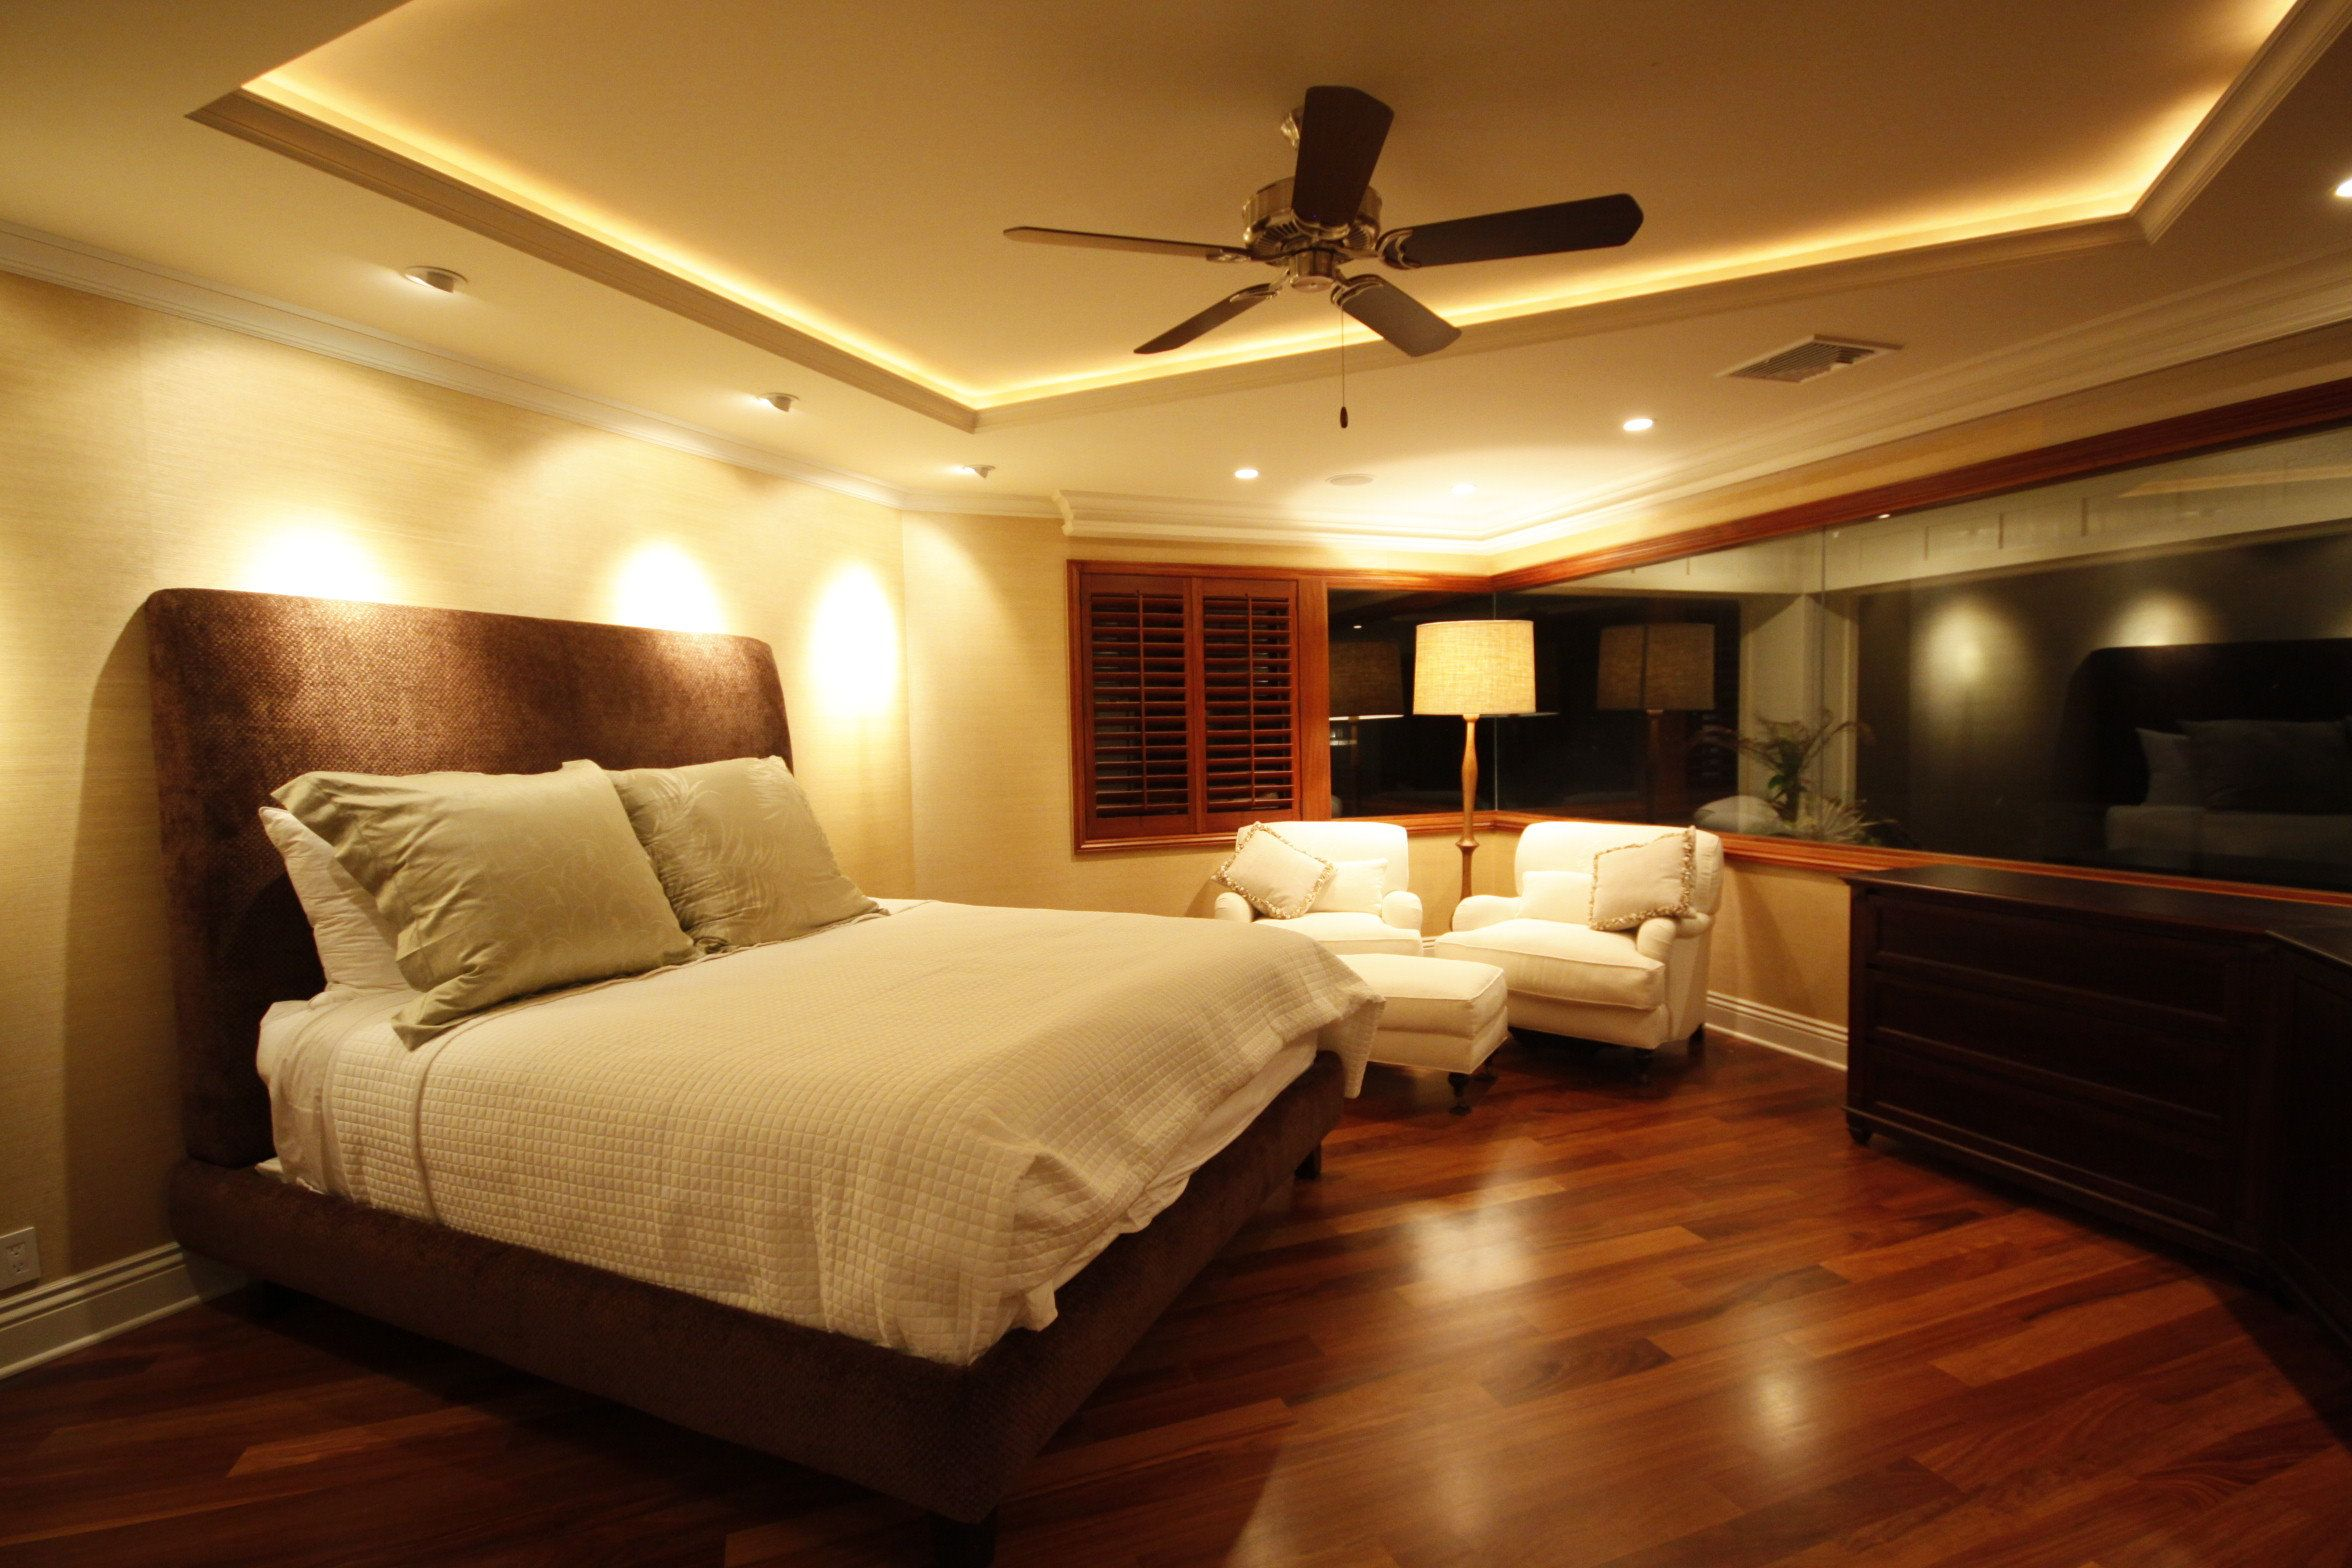 Appealing master bedroom modern decor with wooden floors for Bedroom designs modern